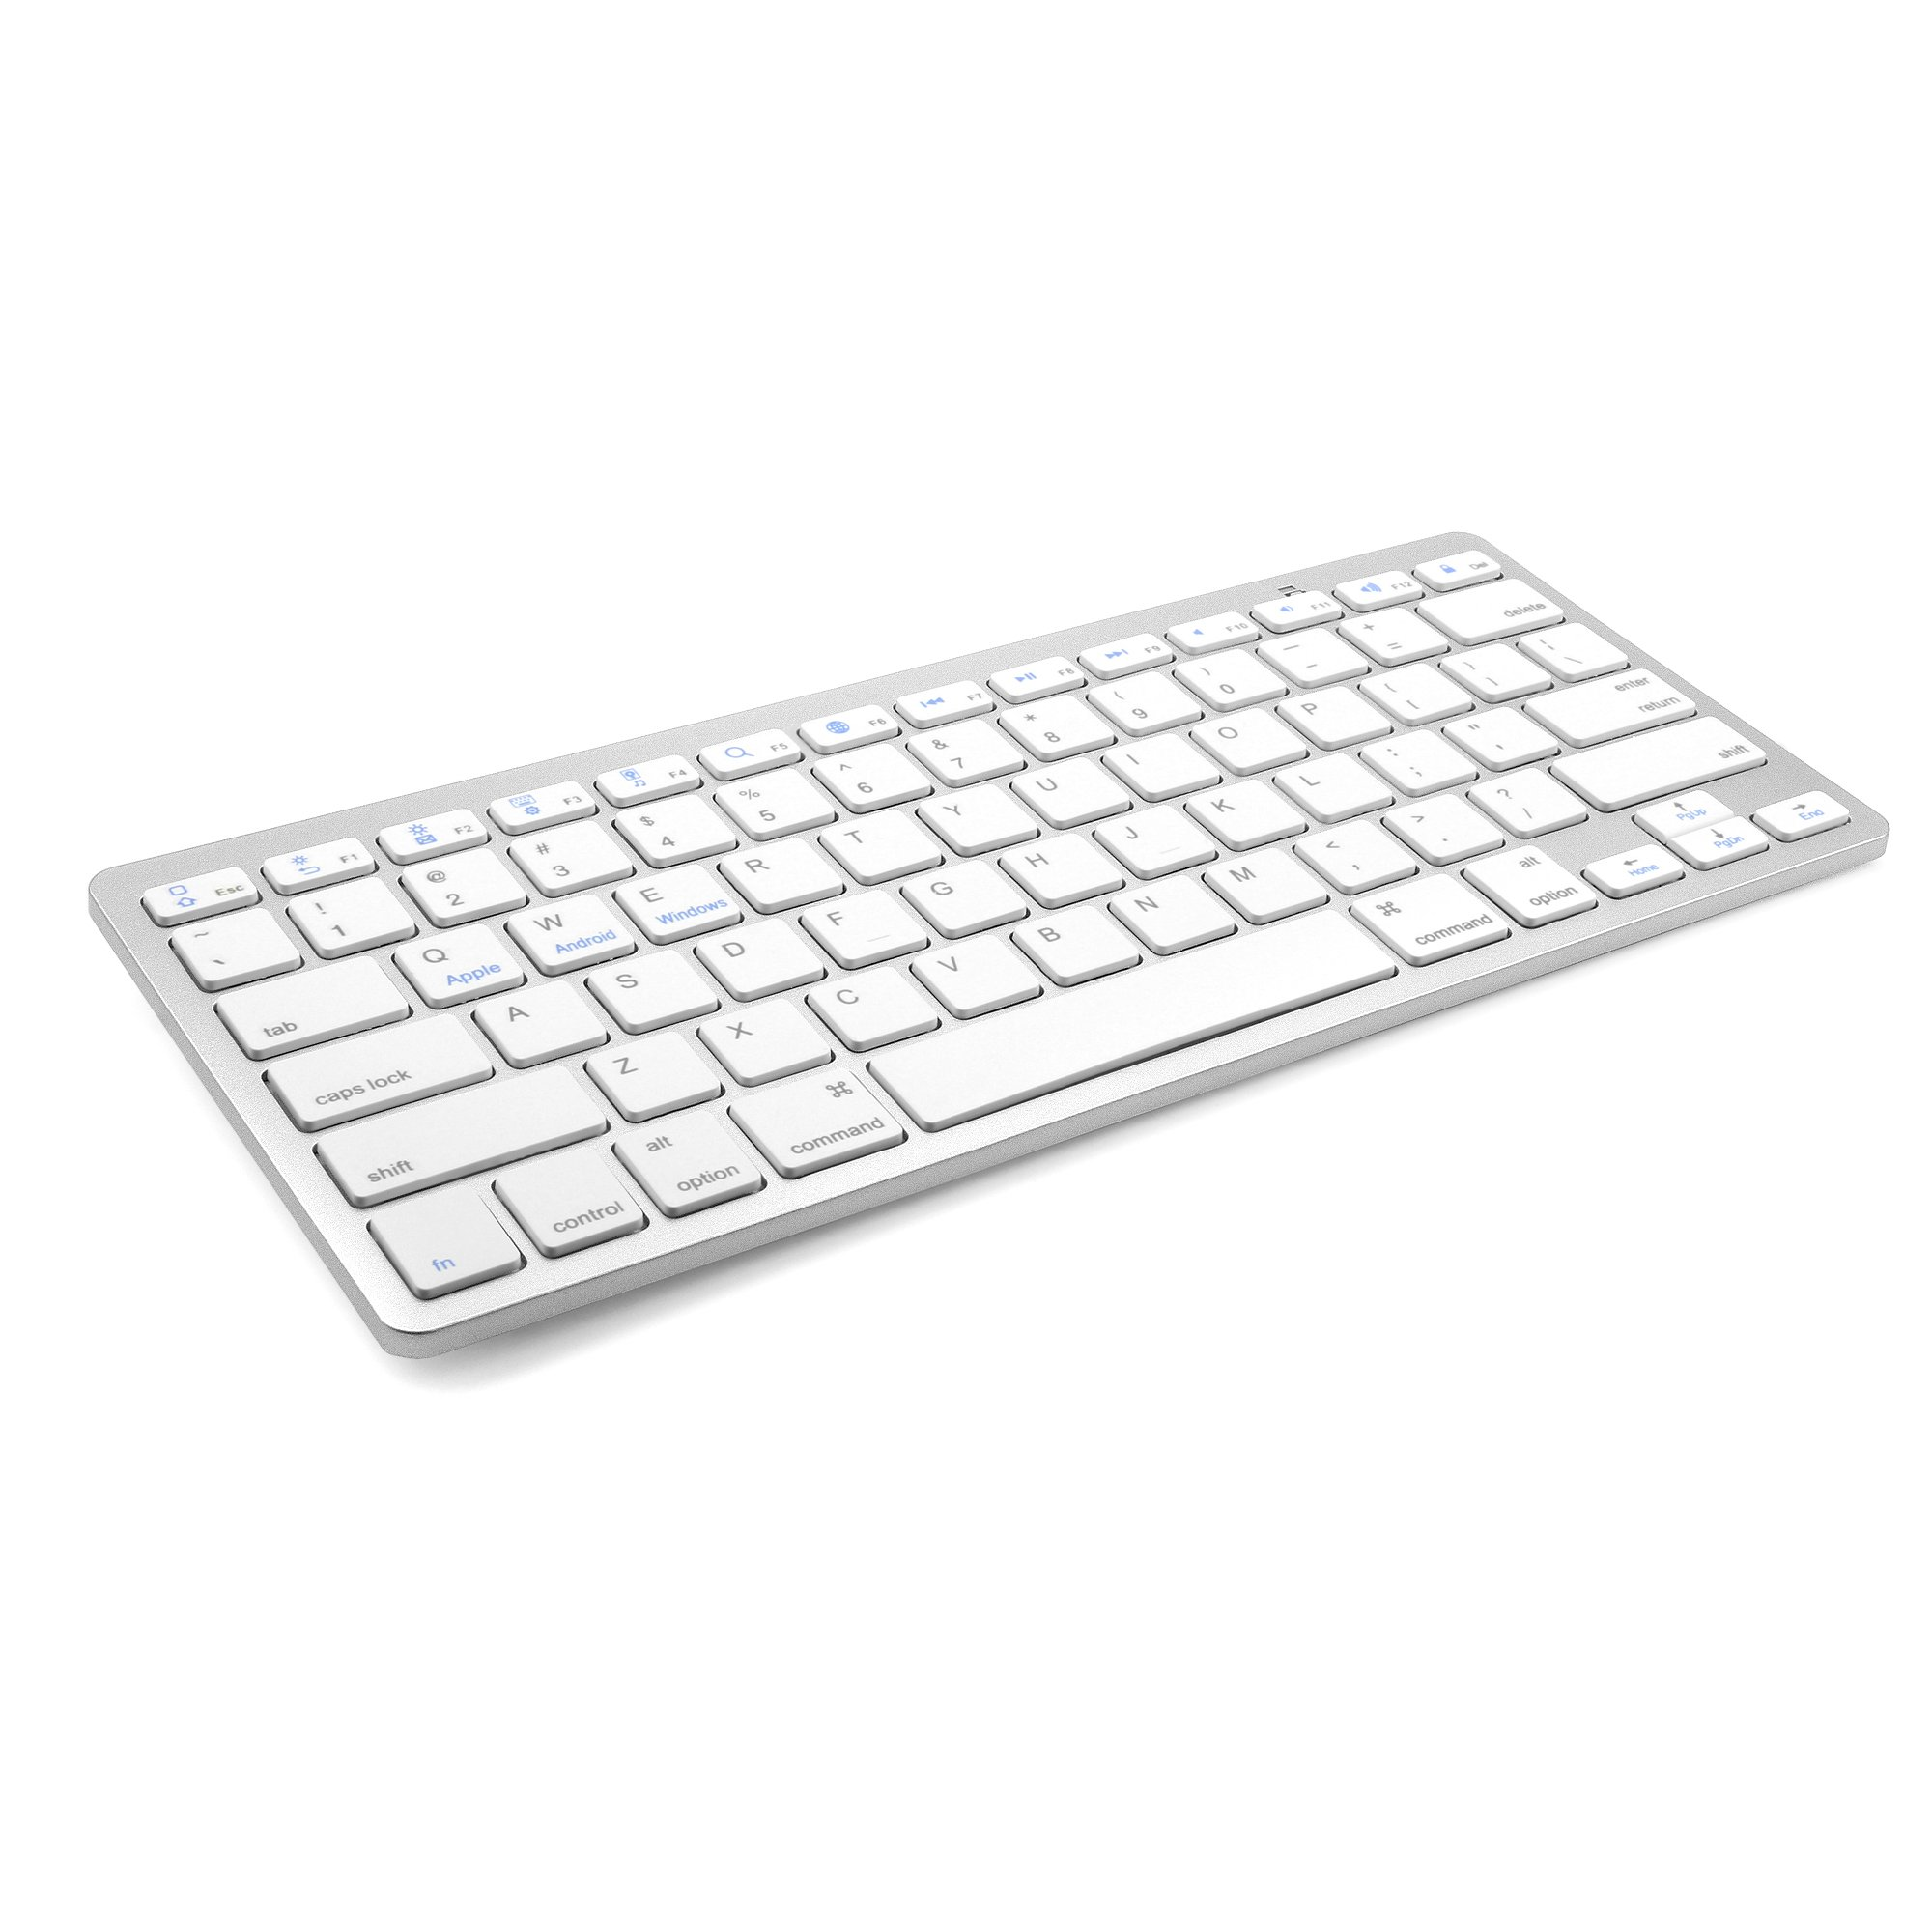 Wireless White Keyboard, JADEMALL Ultra-Slim Wireless Keyboard for Samsung Galaxy Tab Series/IOS/Windows/Android Systems and Other Bluetooth Enabled Devices, White